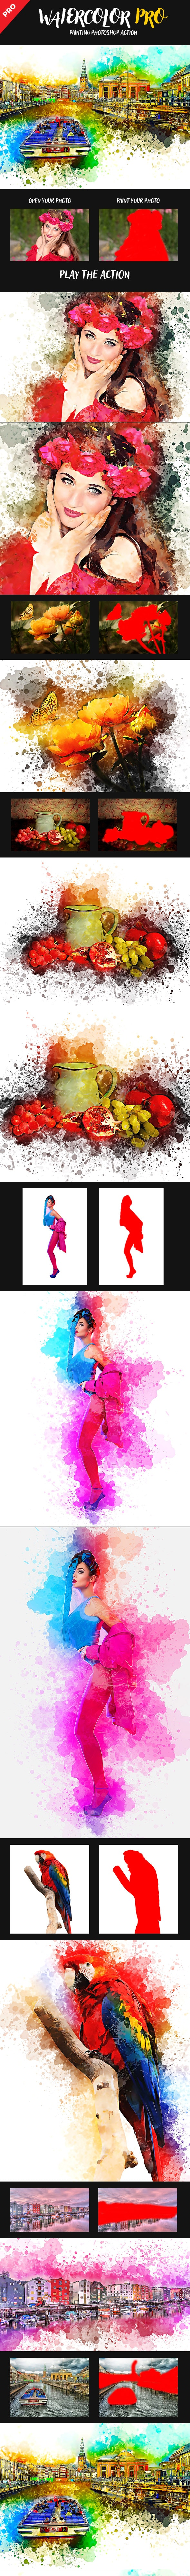 Watercolor Pro Painting Photoshop Action - Photo Effects Actions